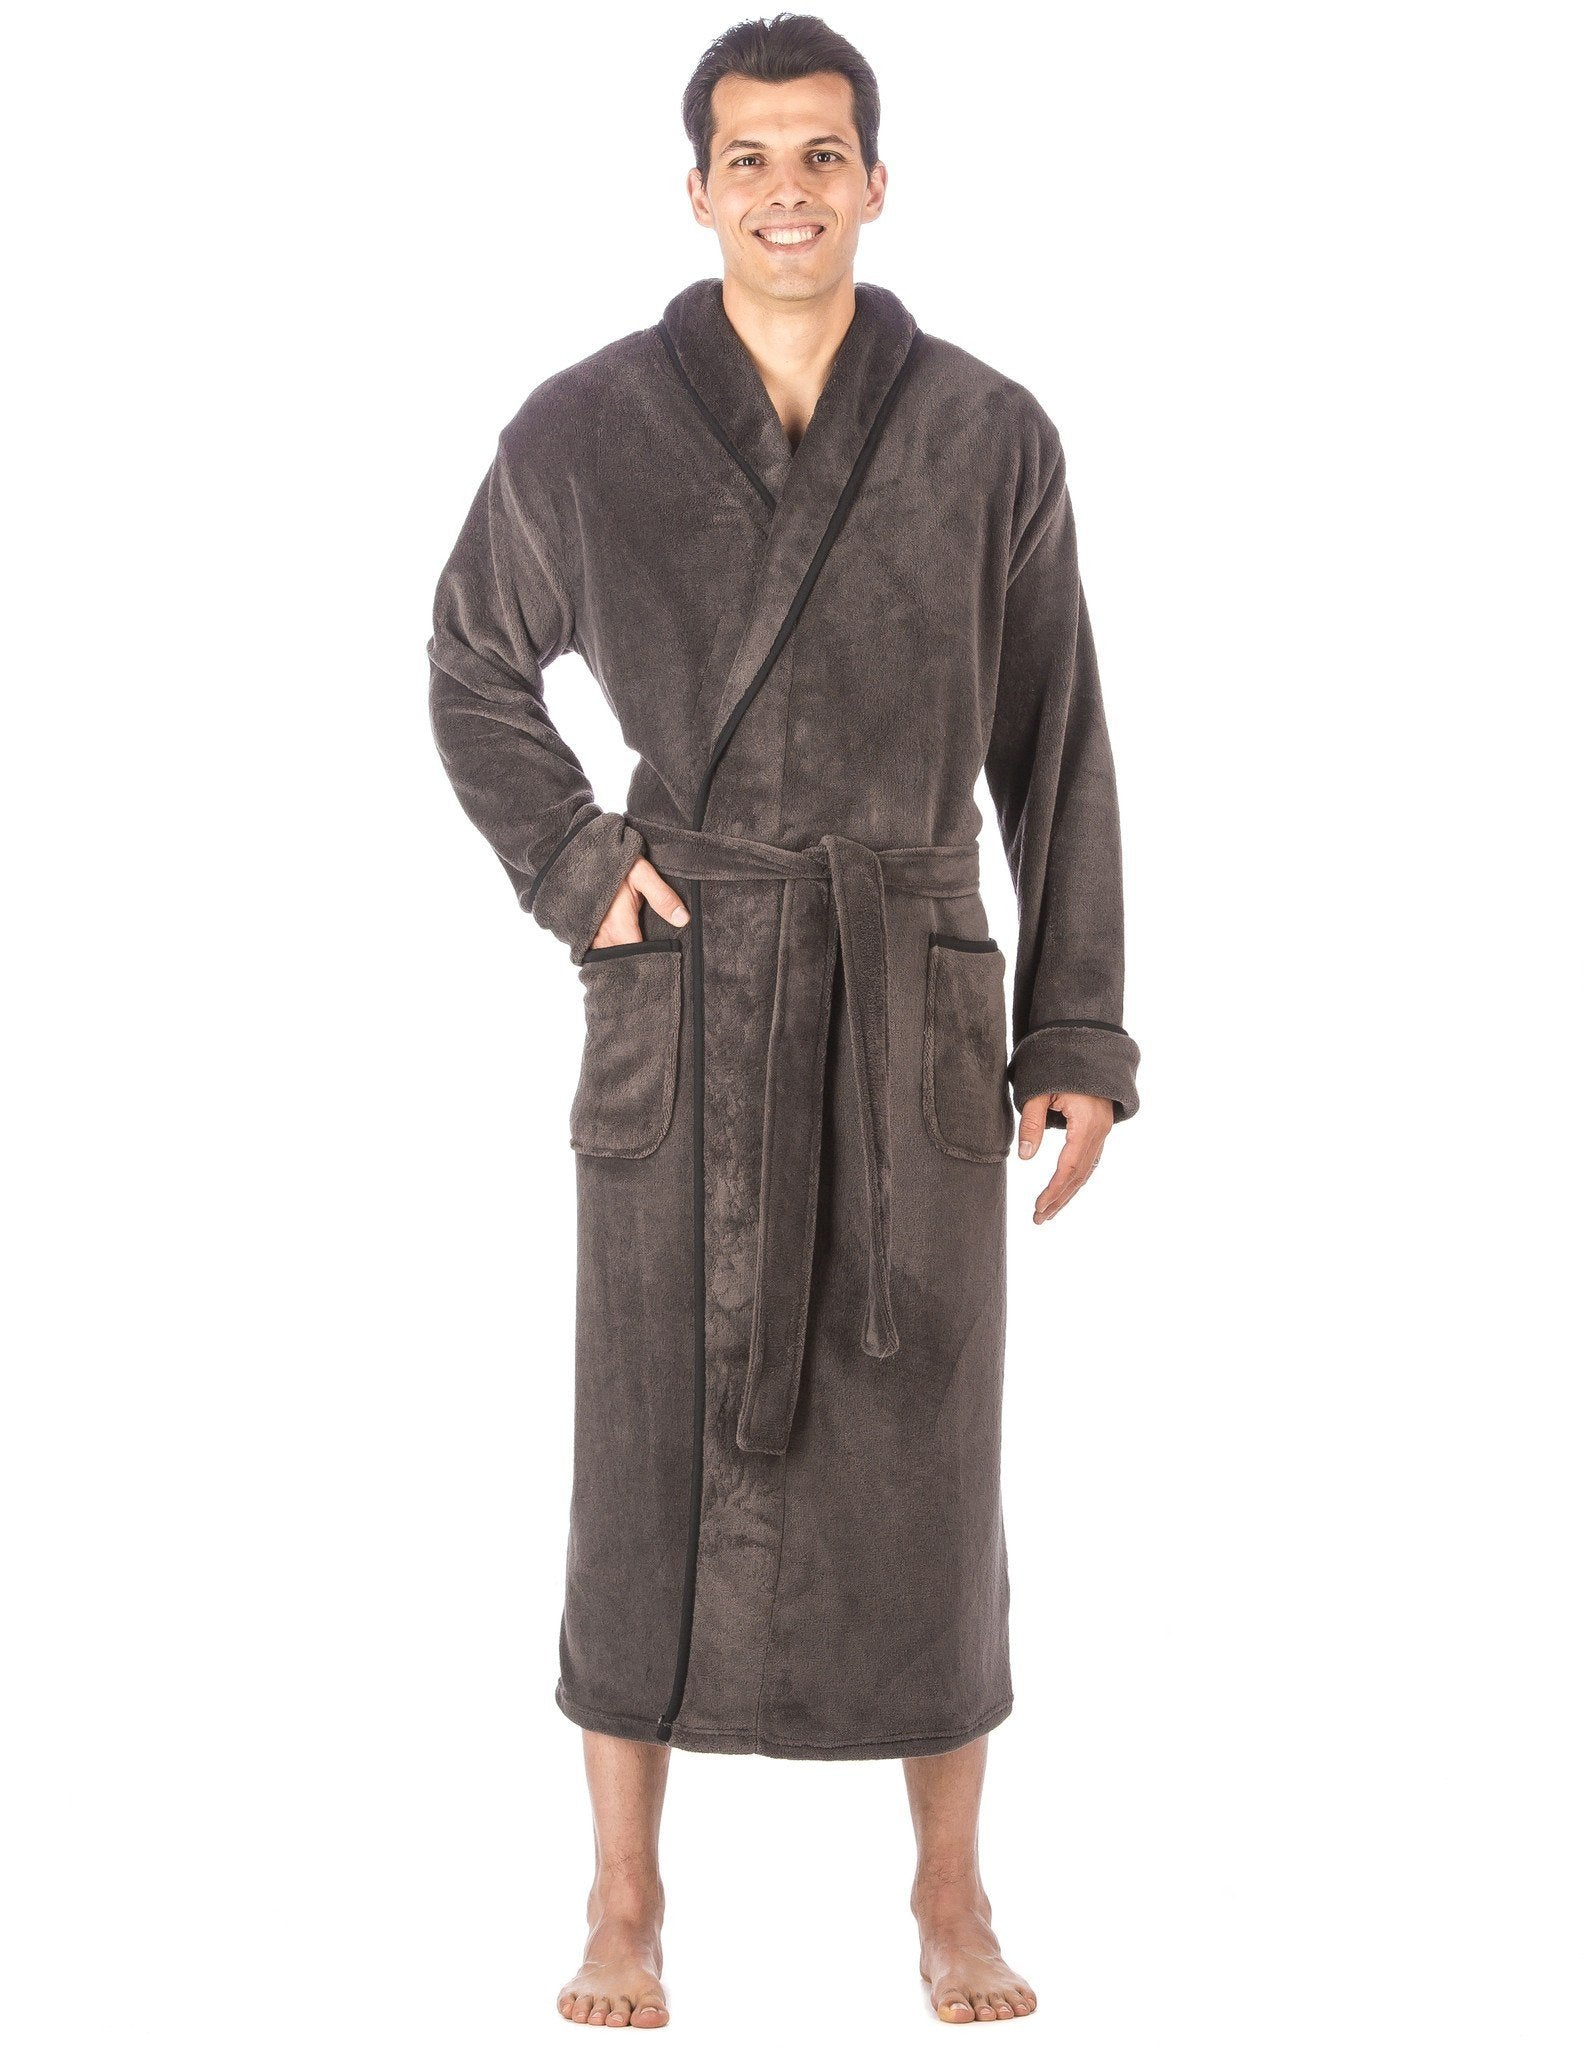 Men's Premium Coral Fleece Long Hooded Plush Spa/Bath Robe - Dark Gray